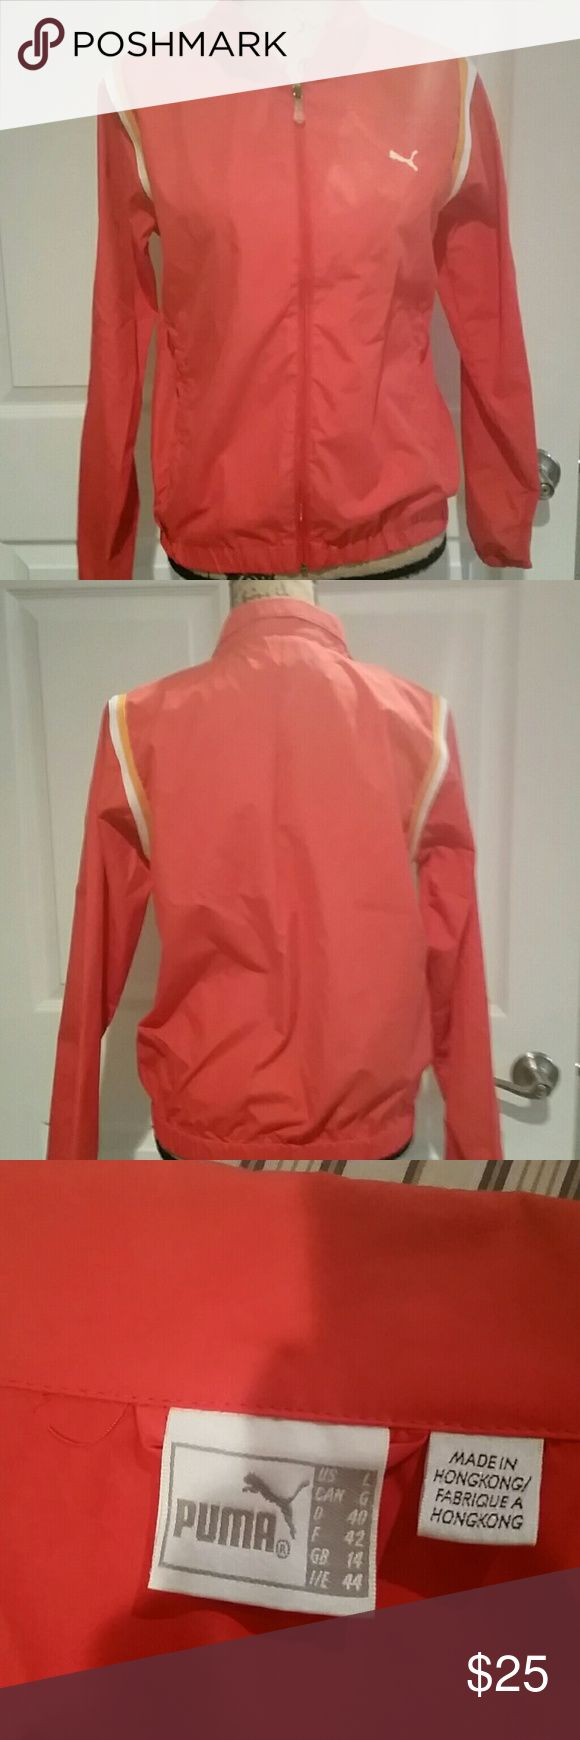 Puma windbreaker warmup jacket Like new puma jacket with pockets. Don't think this was ever actually worn. Bright orange dark coral color Puma Jackets & Coats